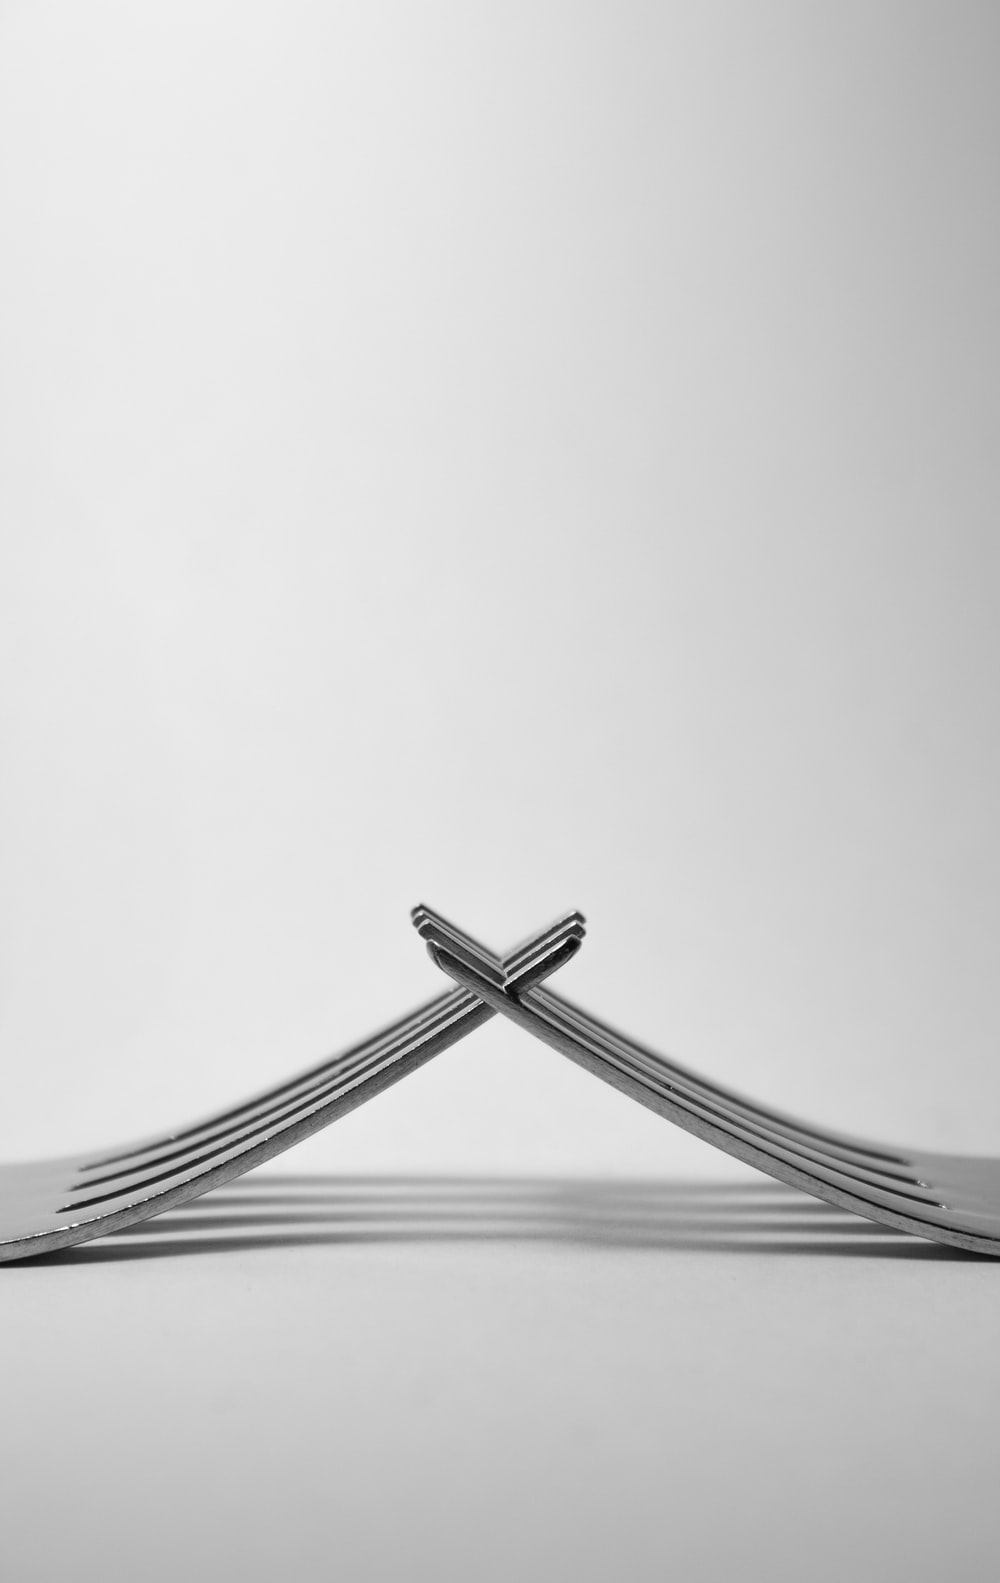 photo of stainless steel forks in white background